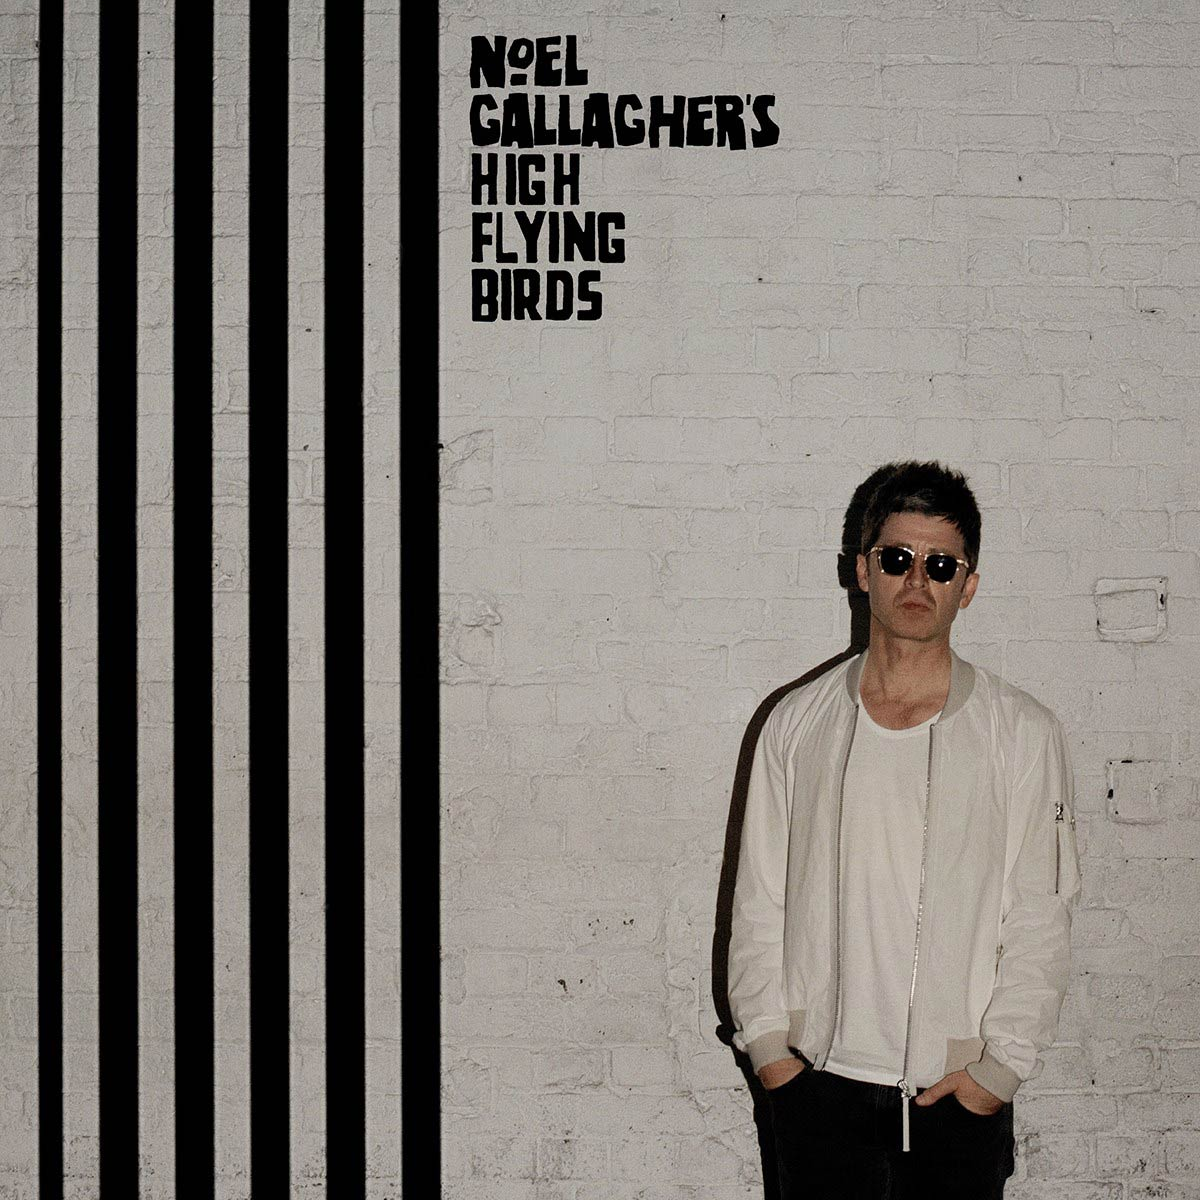 gallagher latino personals Find noel gallagher discography, albums and singles on allmusic.